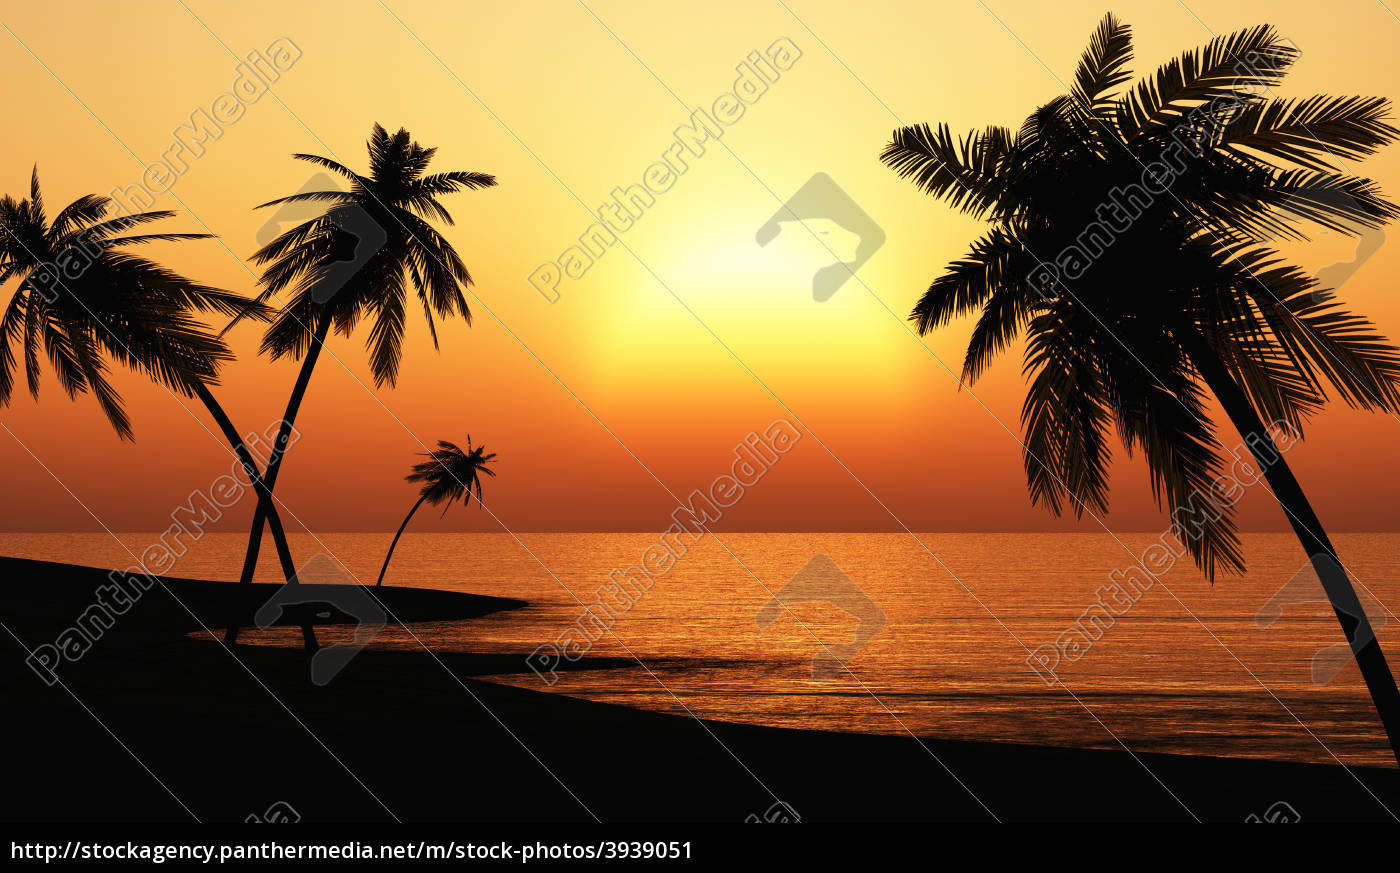 Royalty free image 3939051 - ibiza sunset chillout beach 03